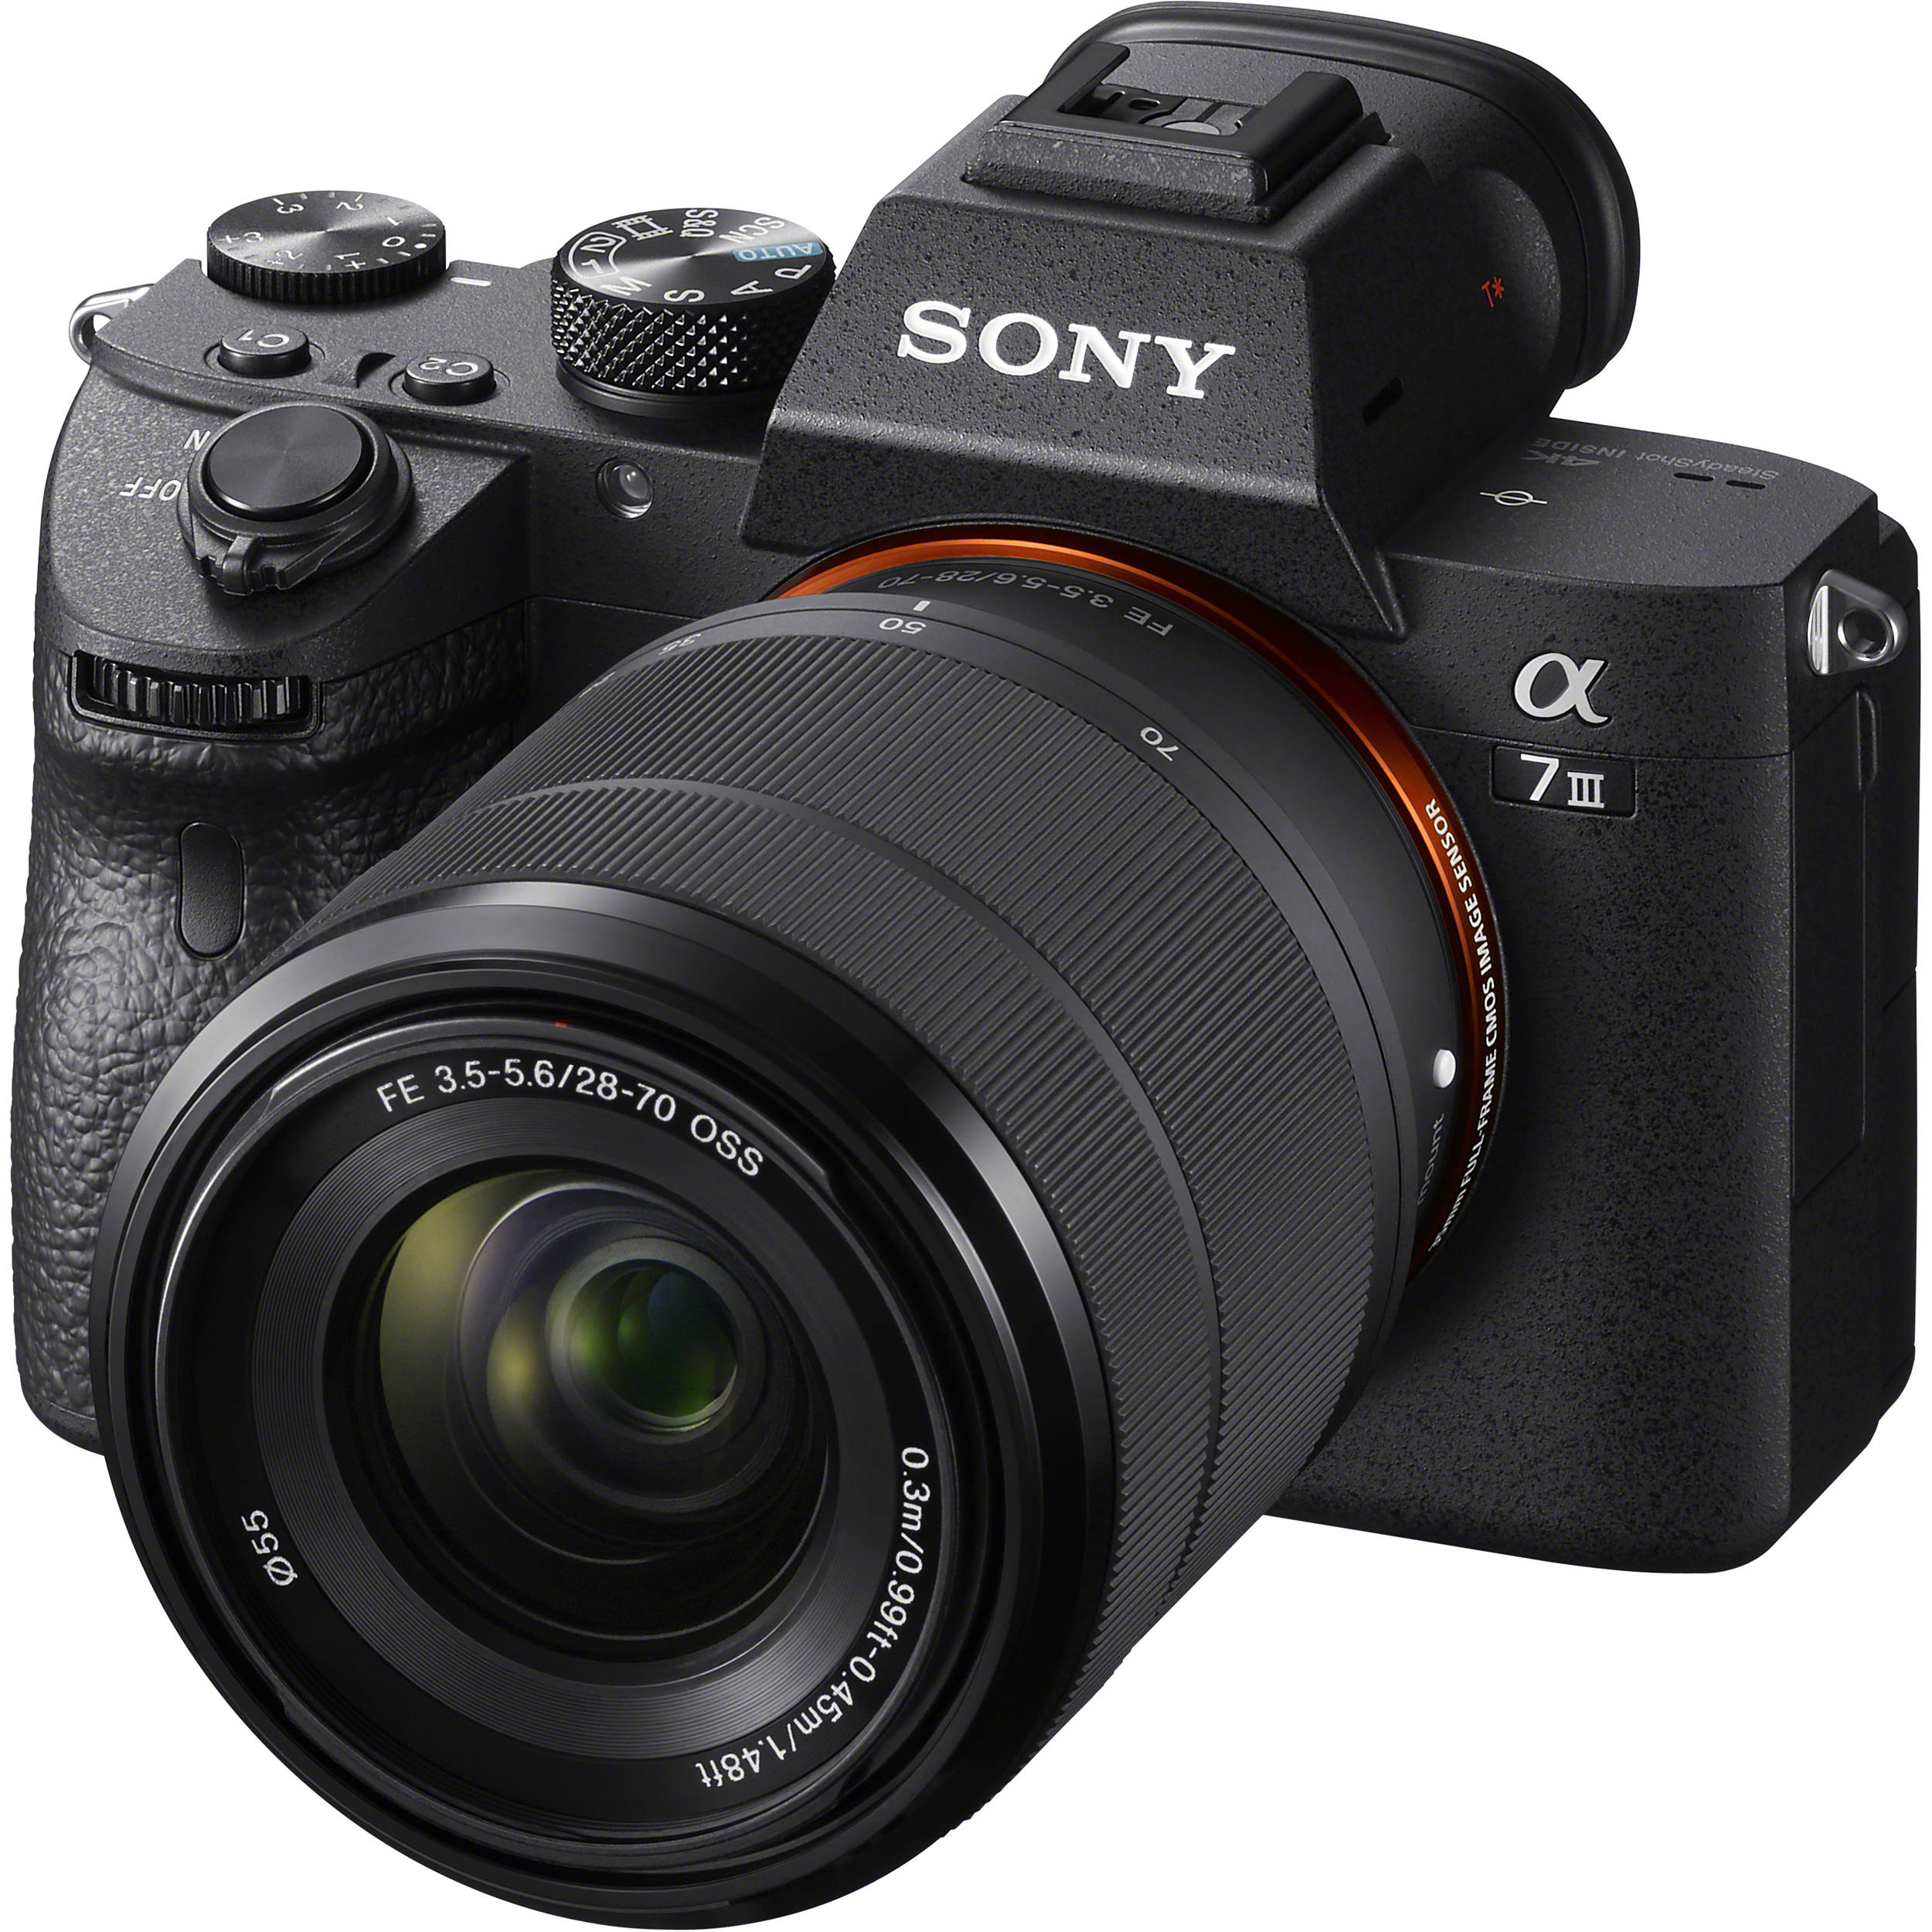 Sony Alpha a7 III Mirrorless Digital Camera ILCE7M3K/B B&H Photo